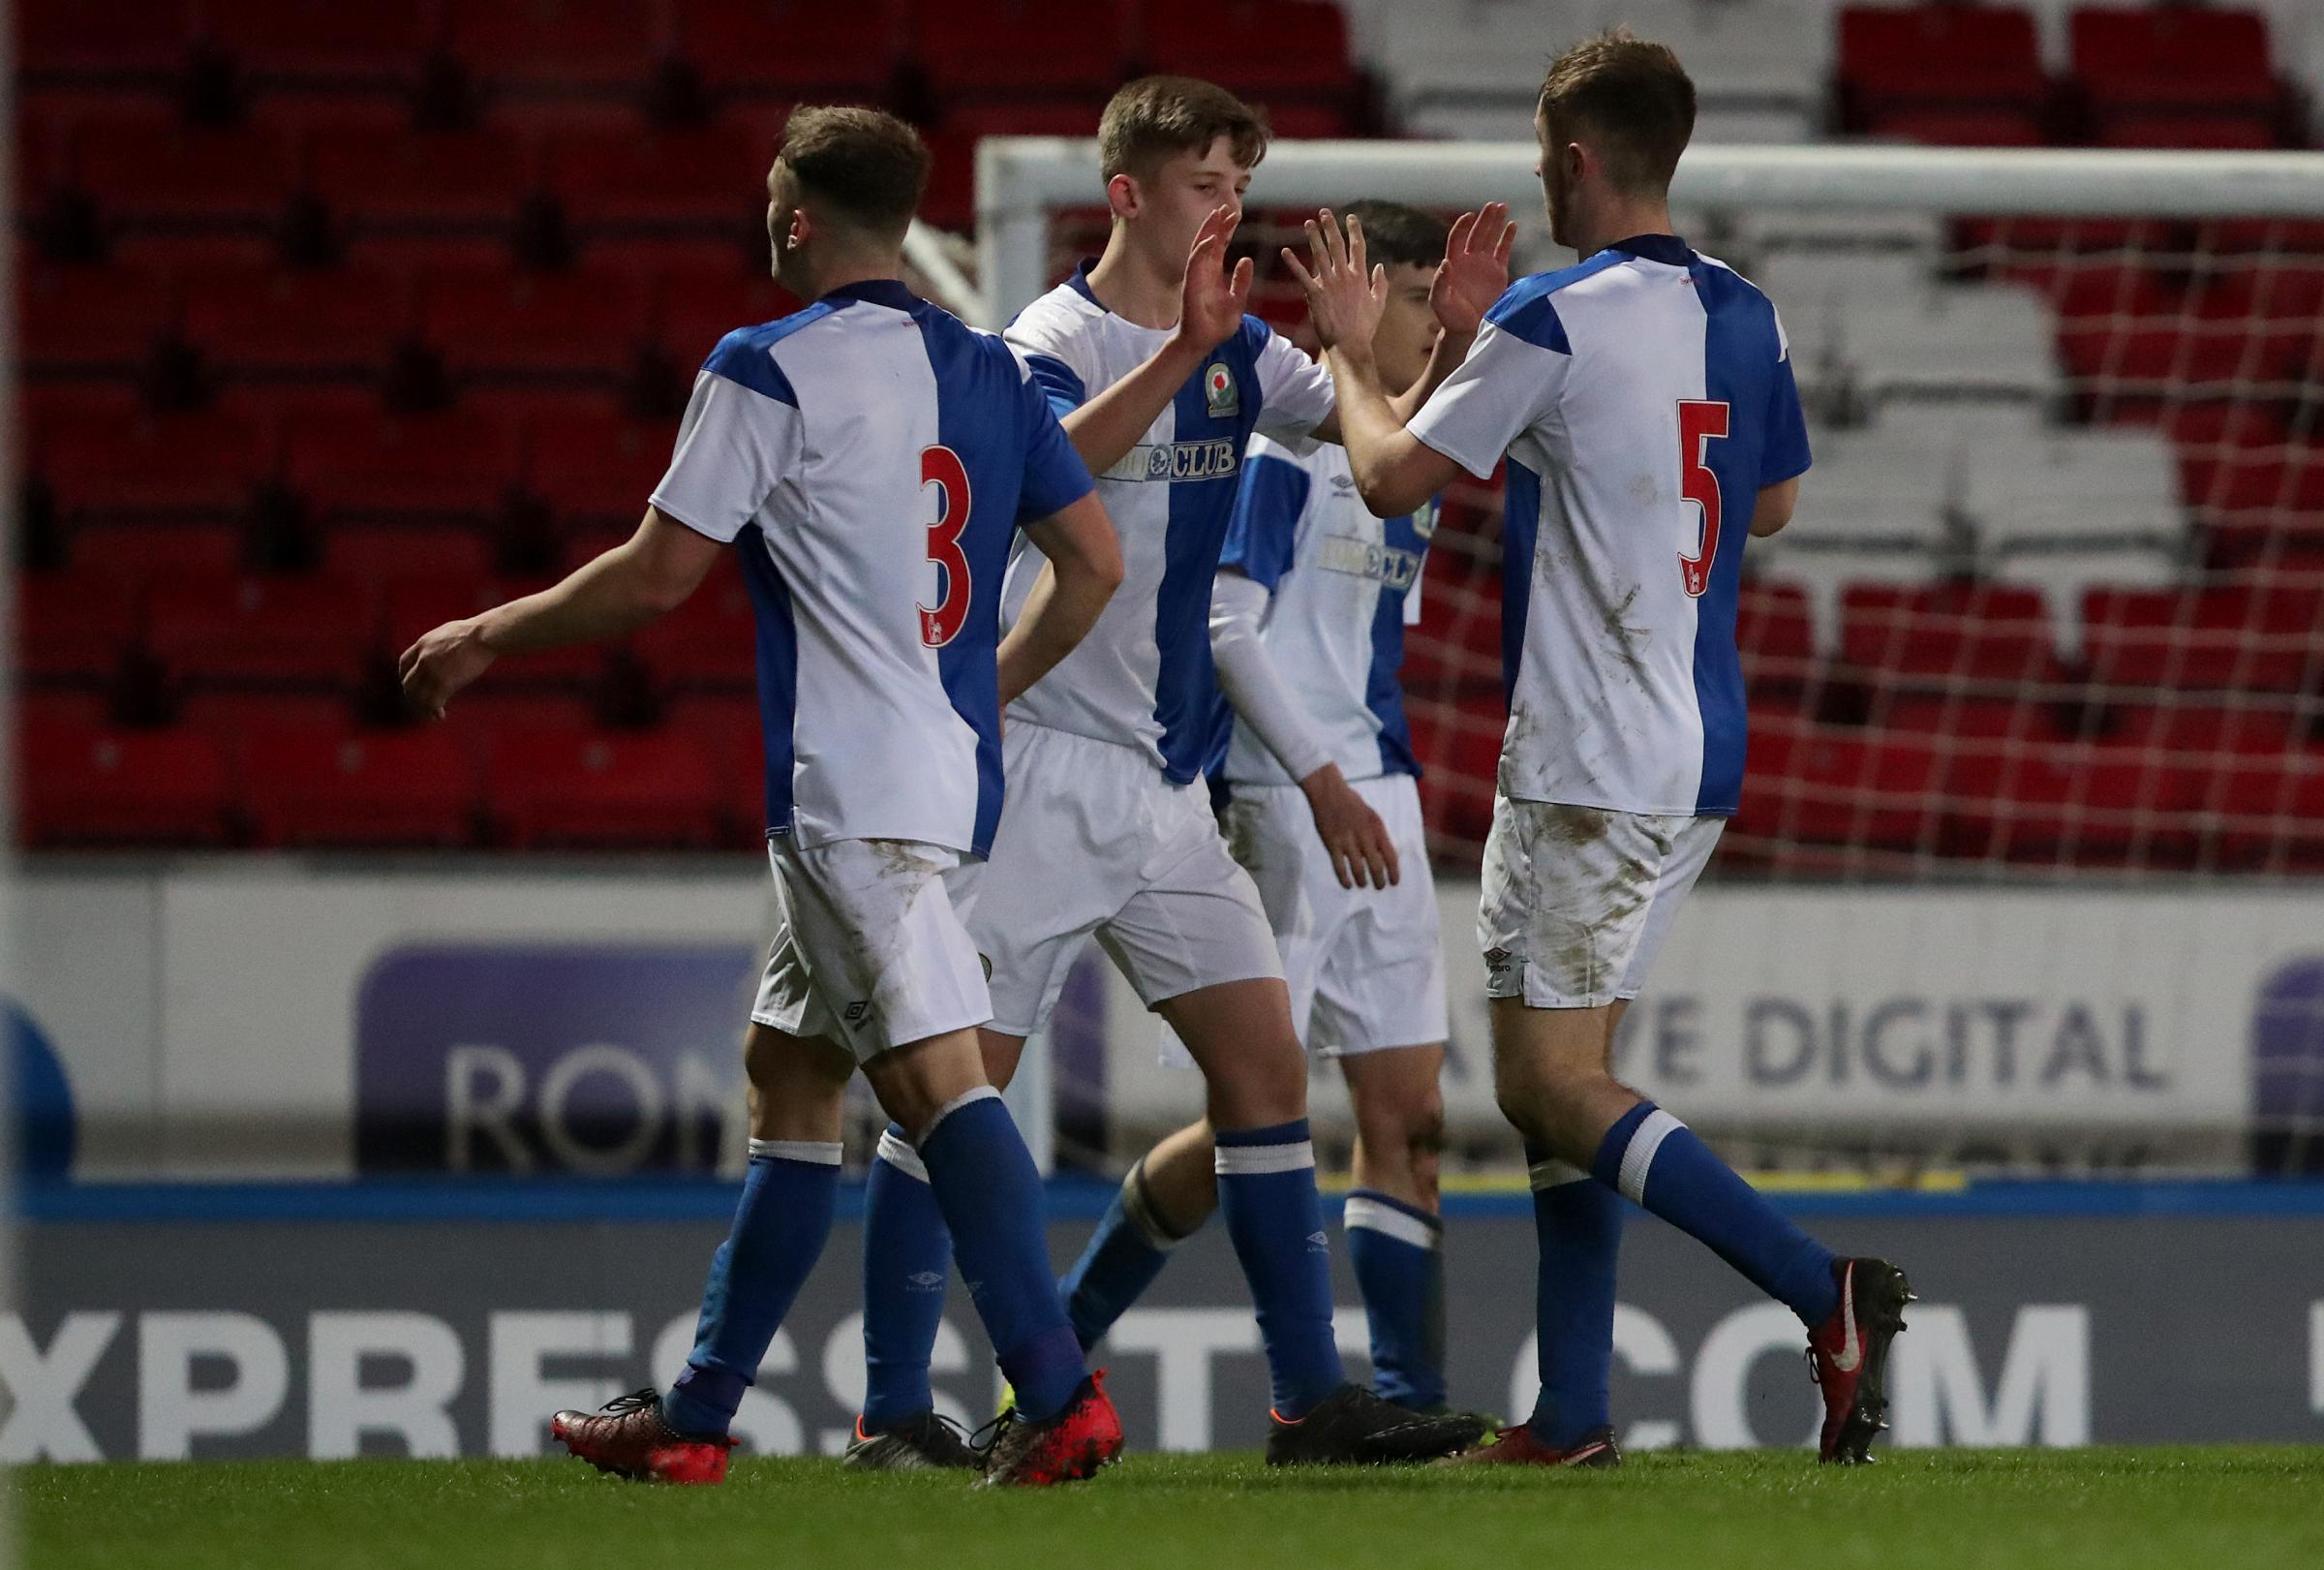 Rovers reached the last eight of the FA Youth Cup last season